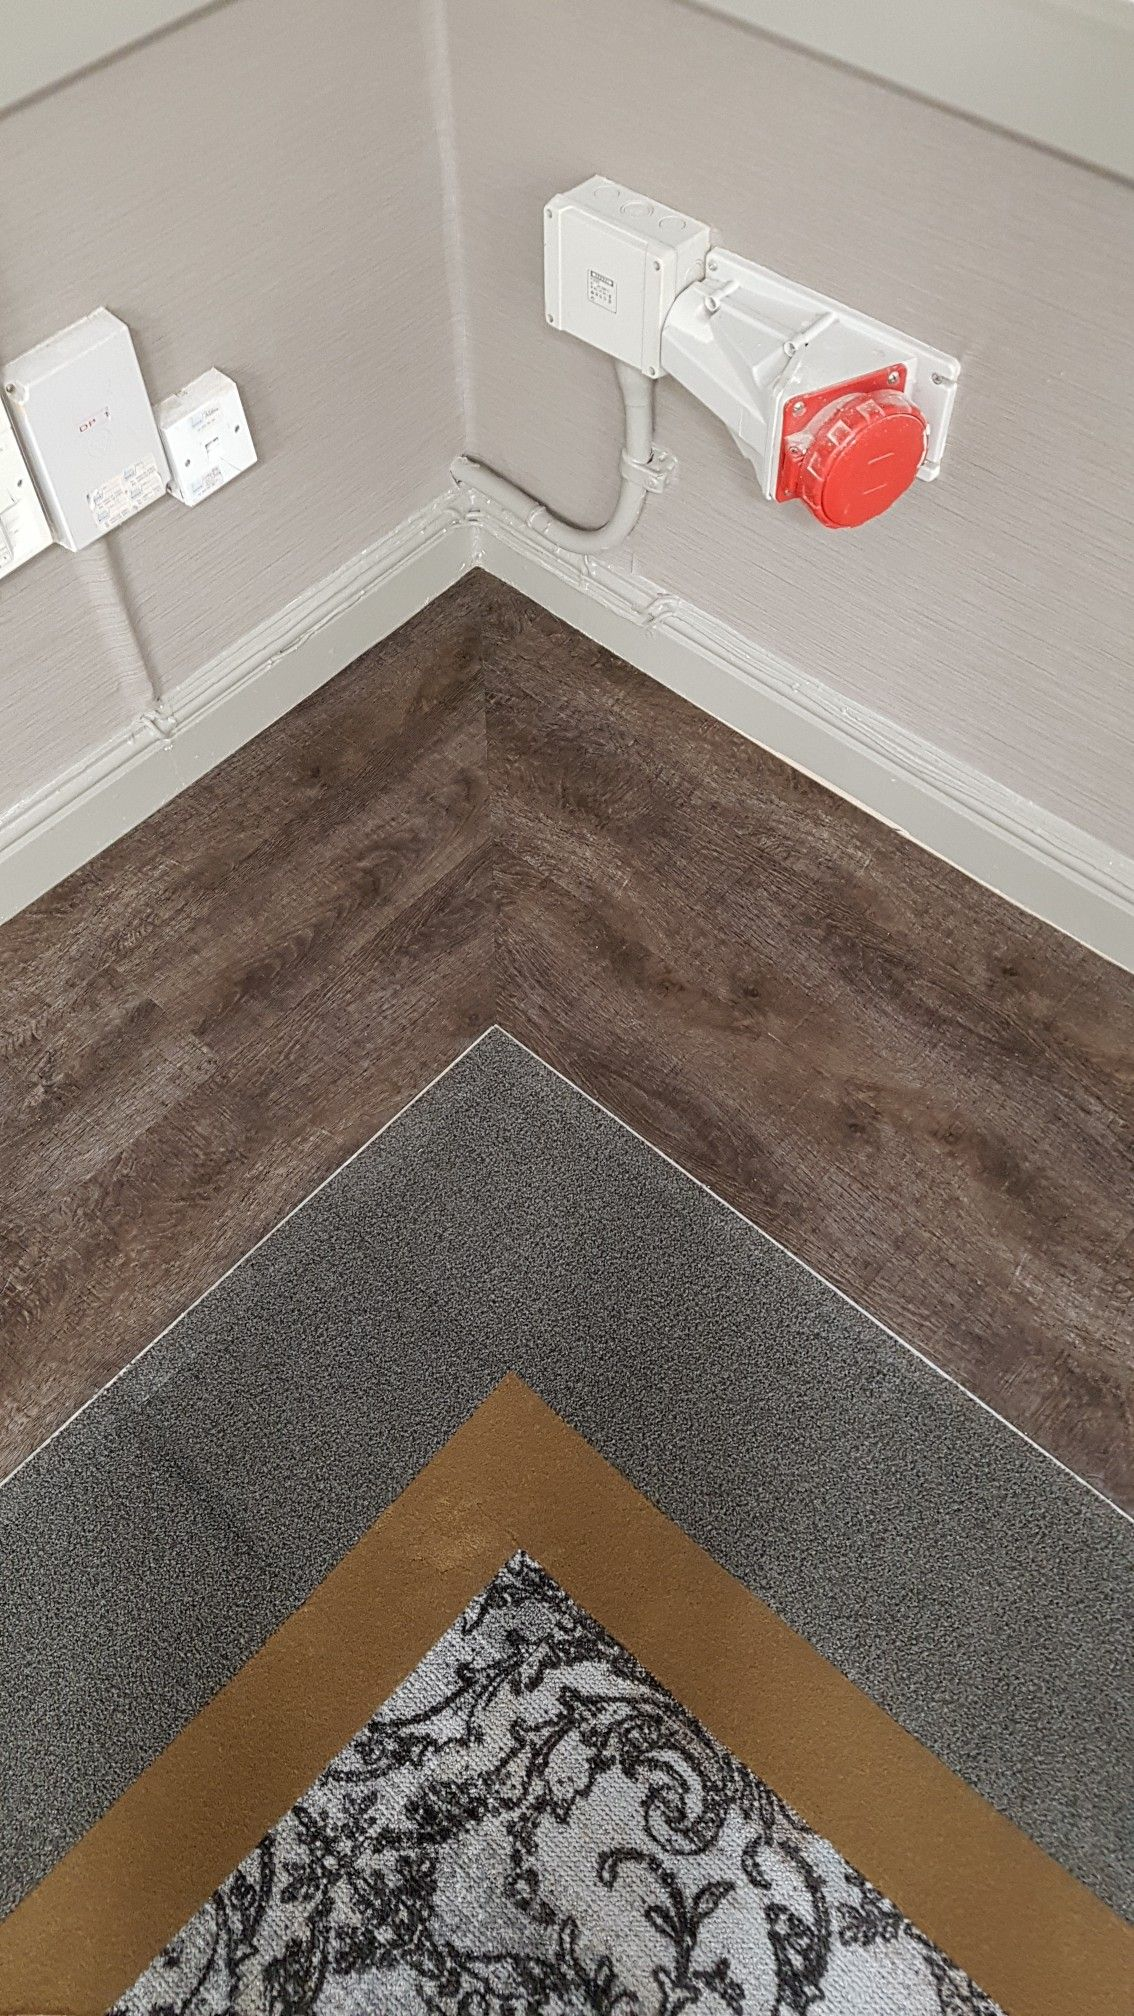 G harding flooring installation incorporating a mitre border using g harding flooring installation incorporating a mitre border using lvt and carpet tiles dailygadgetfo Image collections